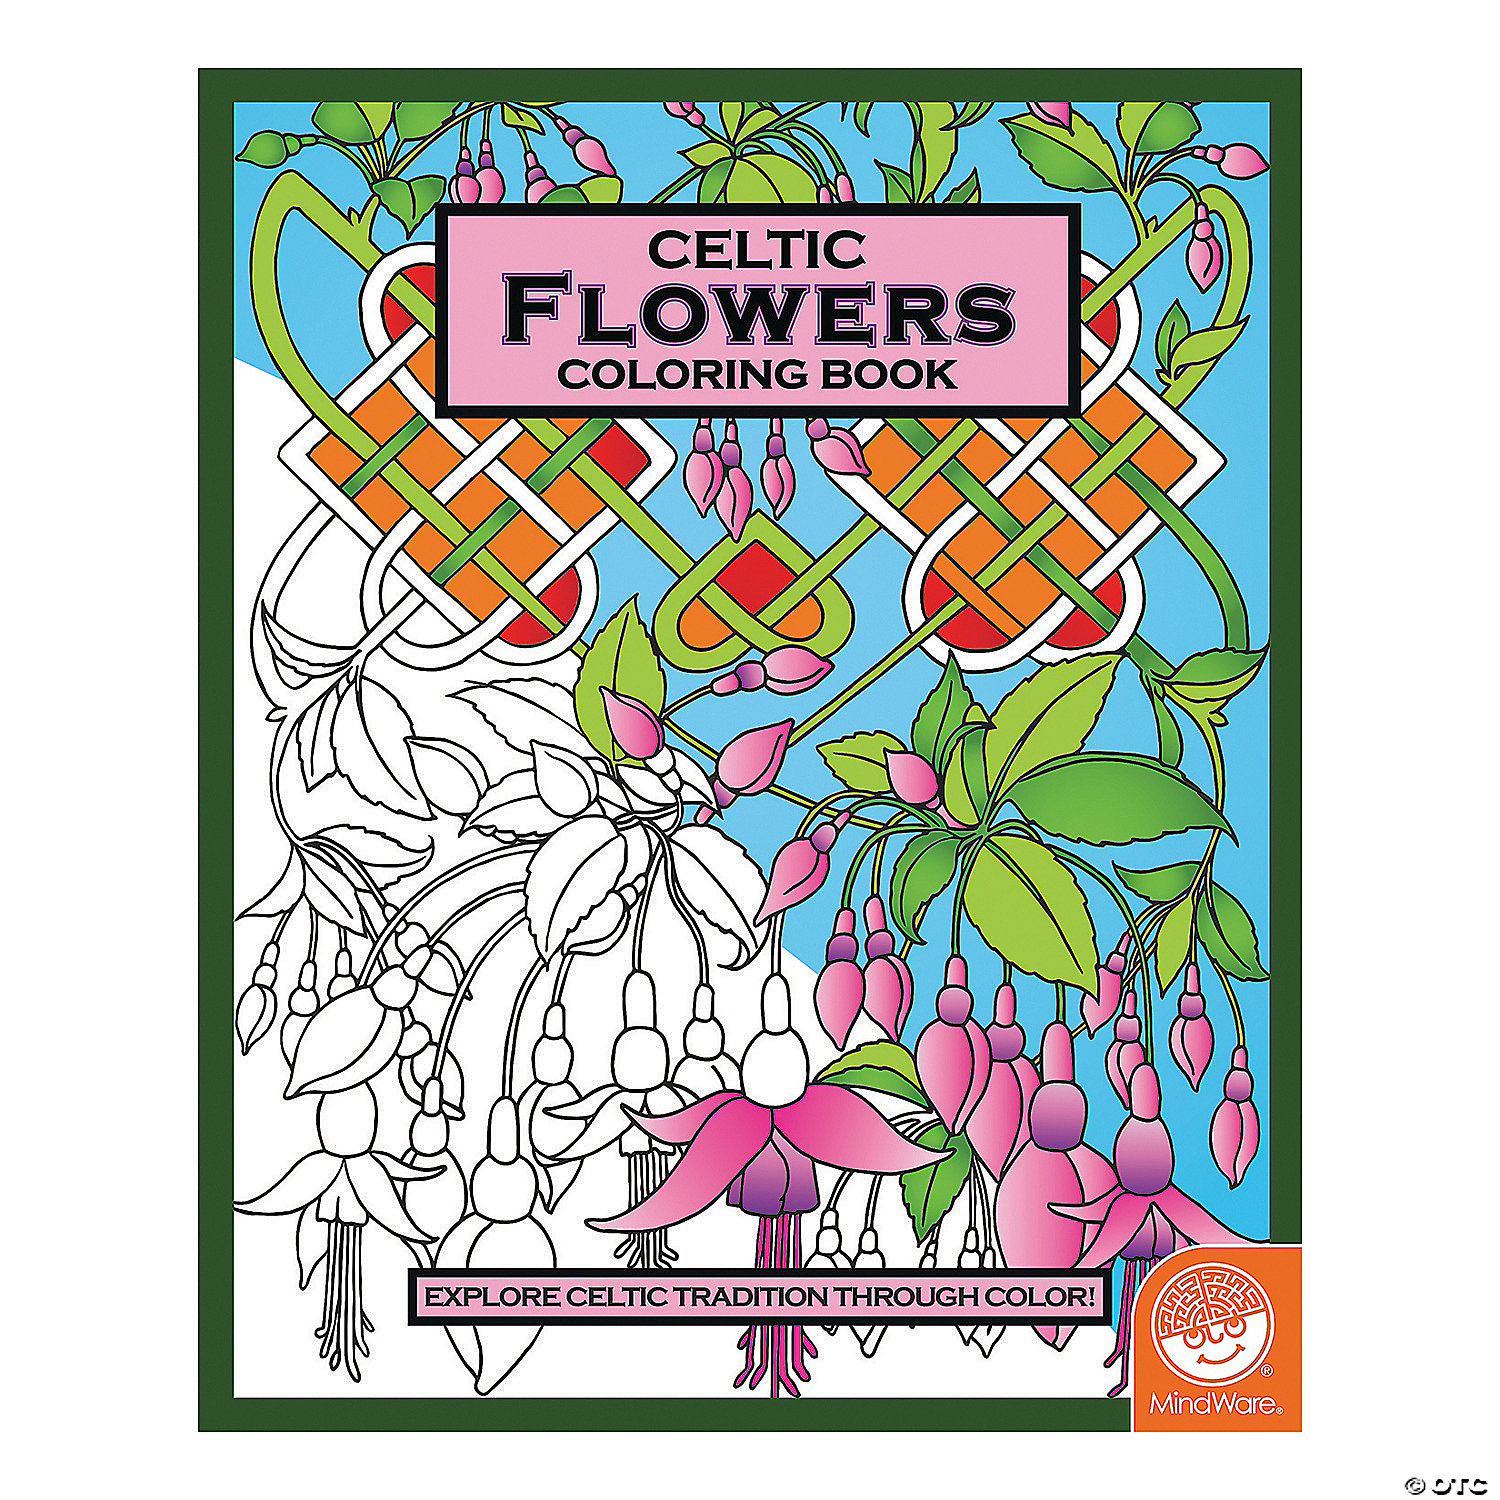 celtic flowers coloring book - Celtic Coloring Book